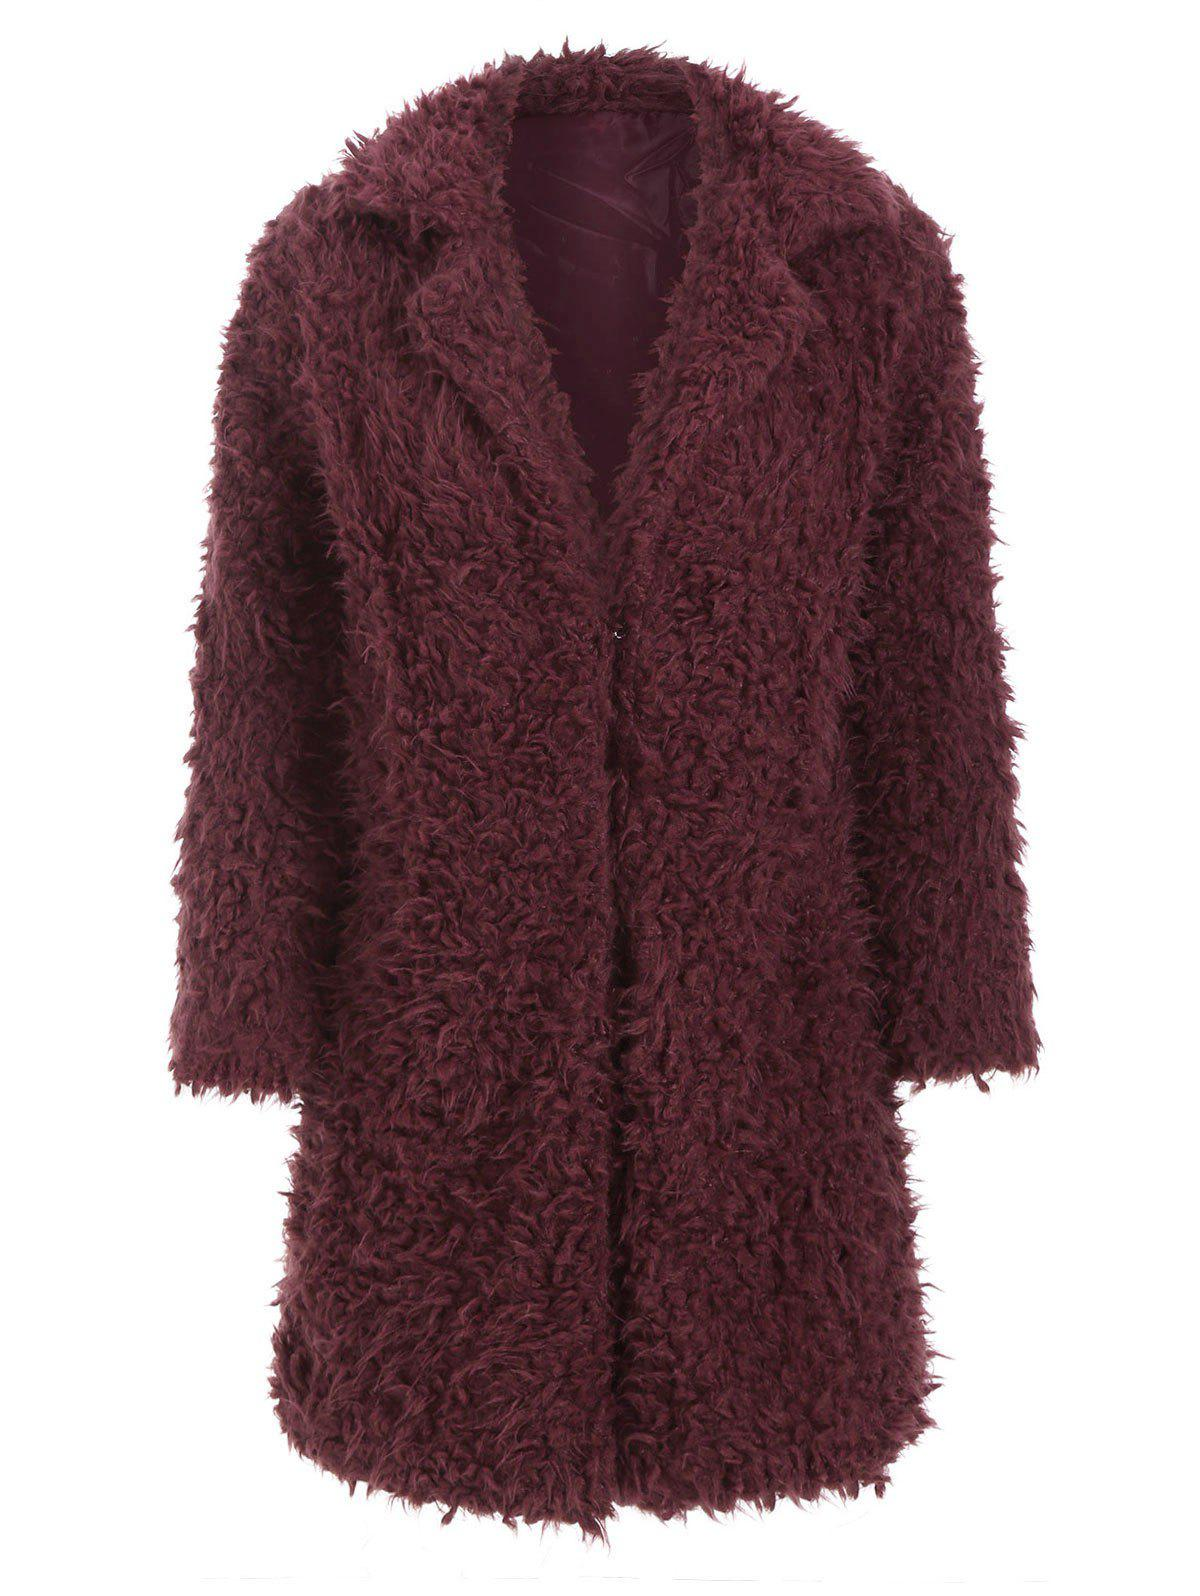 Hook-and-eye Faux Shearling Coat - RED WINE S